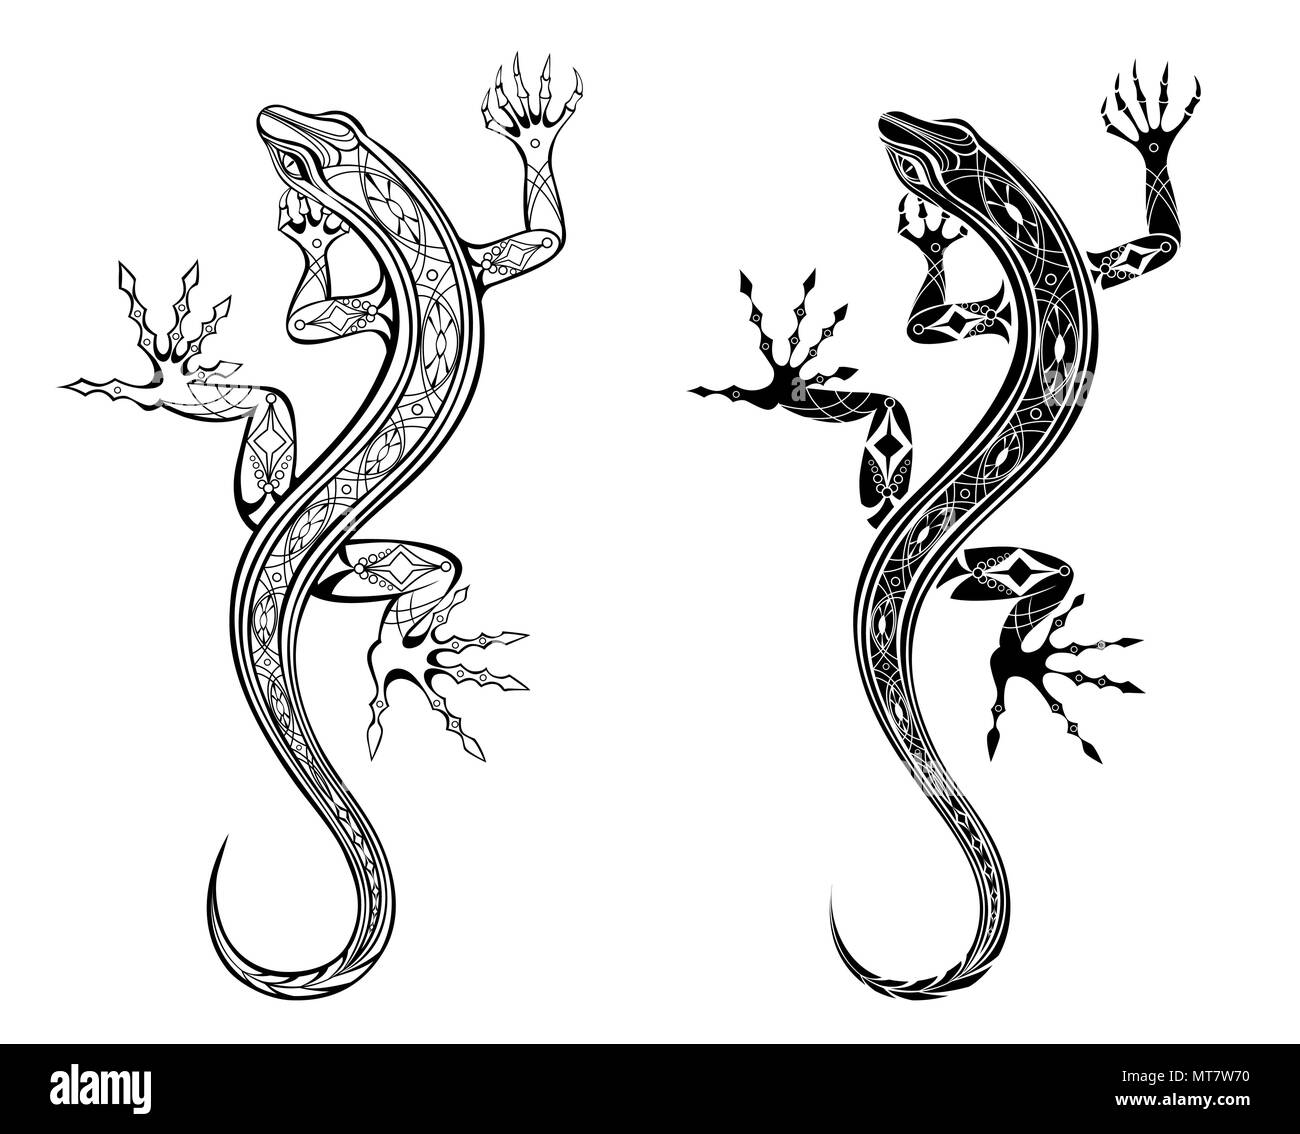 Two artistically drawn, contour, patterned lizards on white background. Tattoo style. - Stock Image